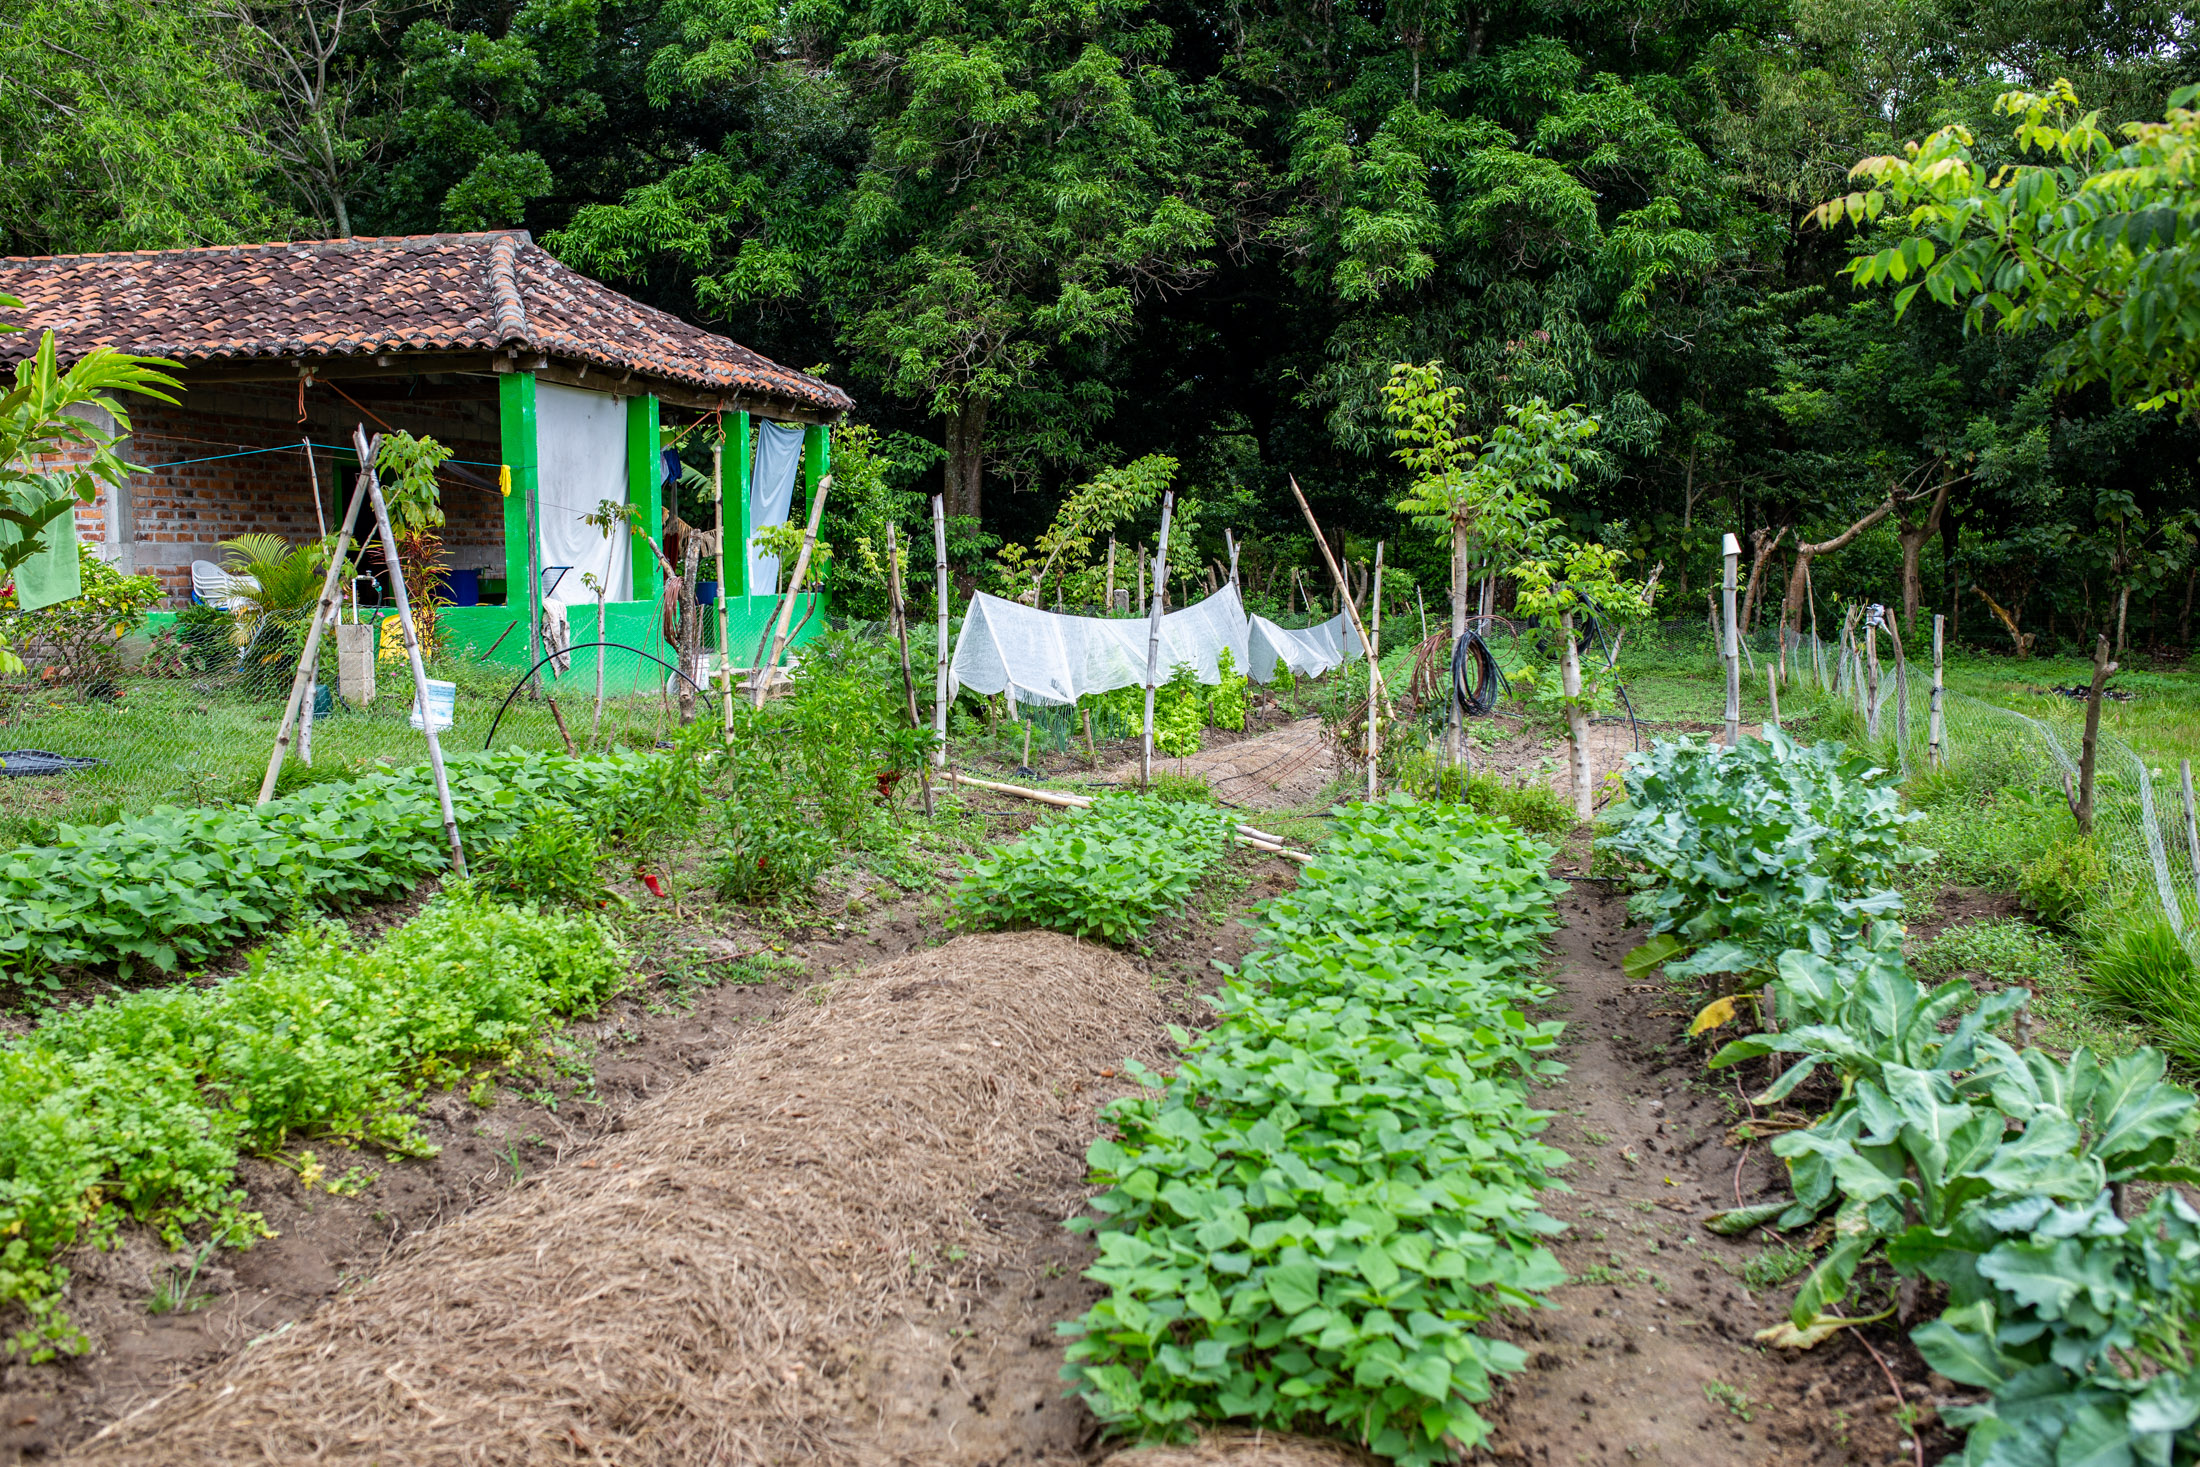 Neighbors believed the land on the campus in El Salvador was not capable of growing food because of the poor soil quality and the heavy use of chemicals on the plot prior to the Latin America Team's acquisition of the parcel. After soil remediation measures and the consistent use of chemical-free farming practices, today the land produces a variety of herbs, vegetables and fruit trees.